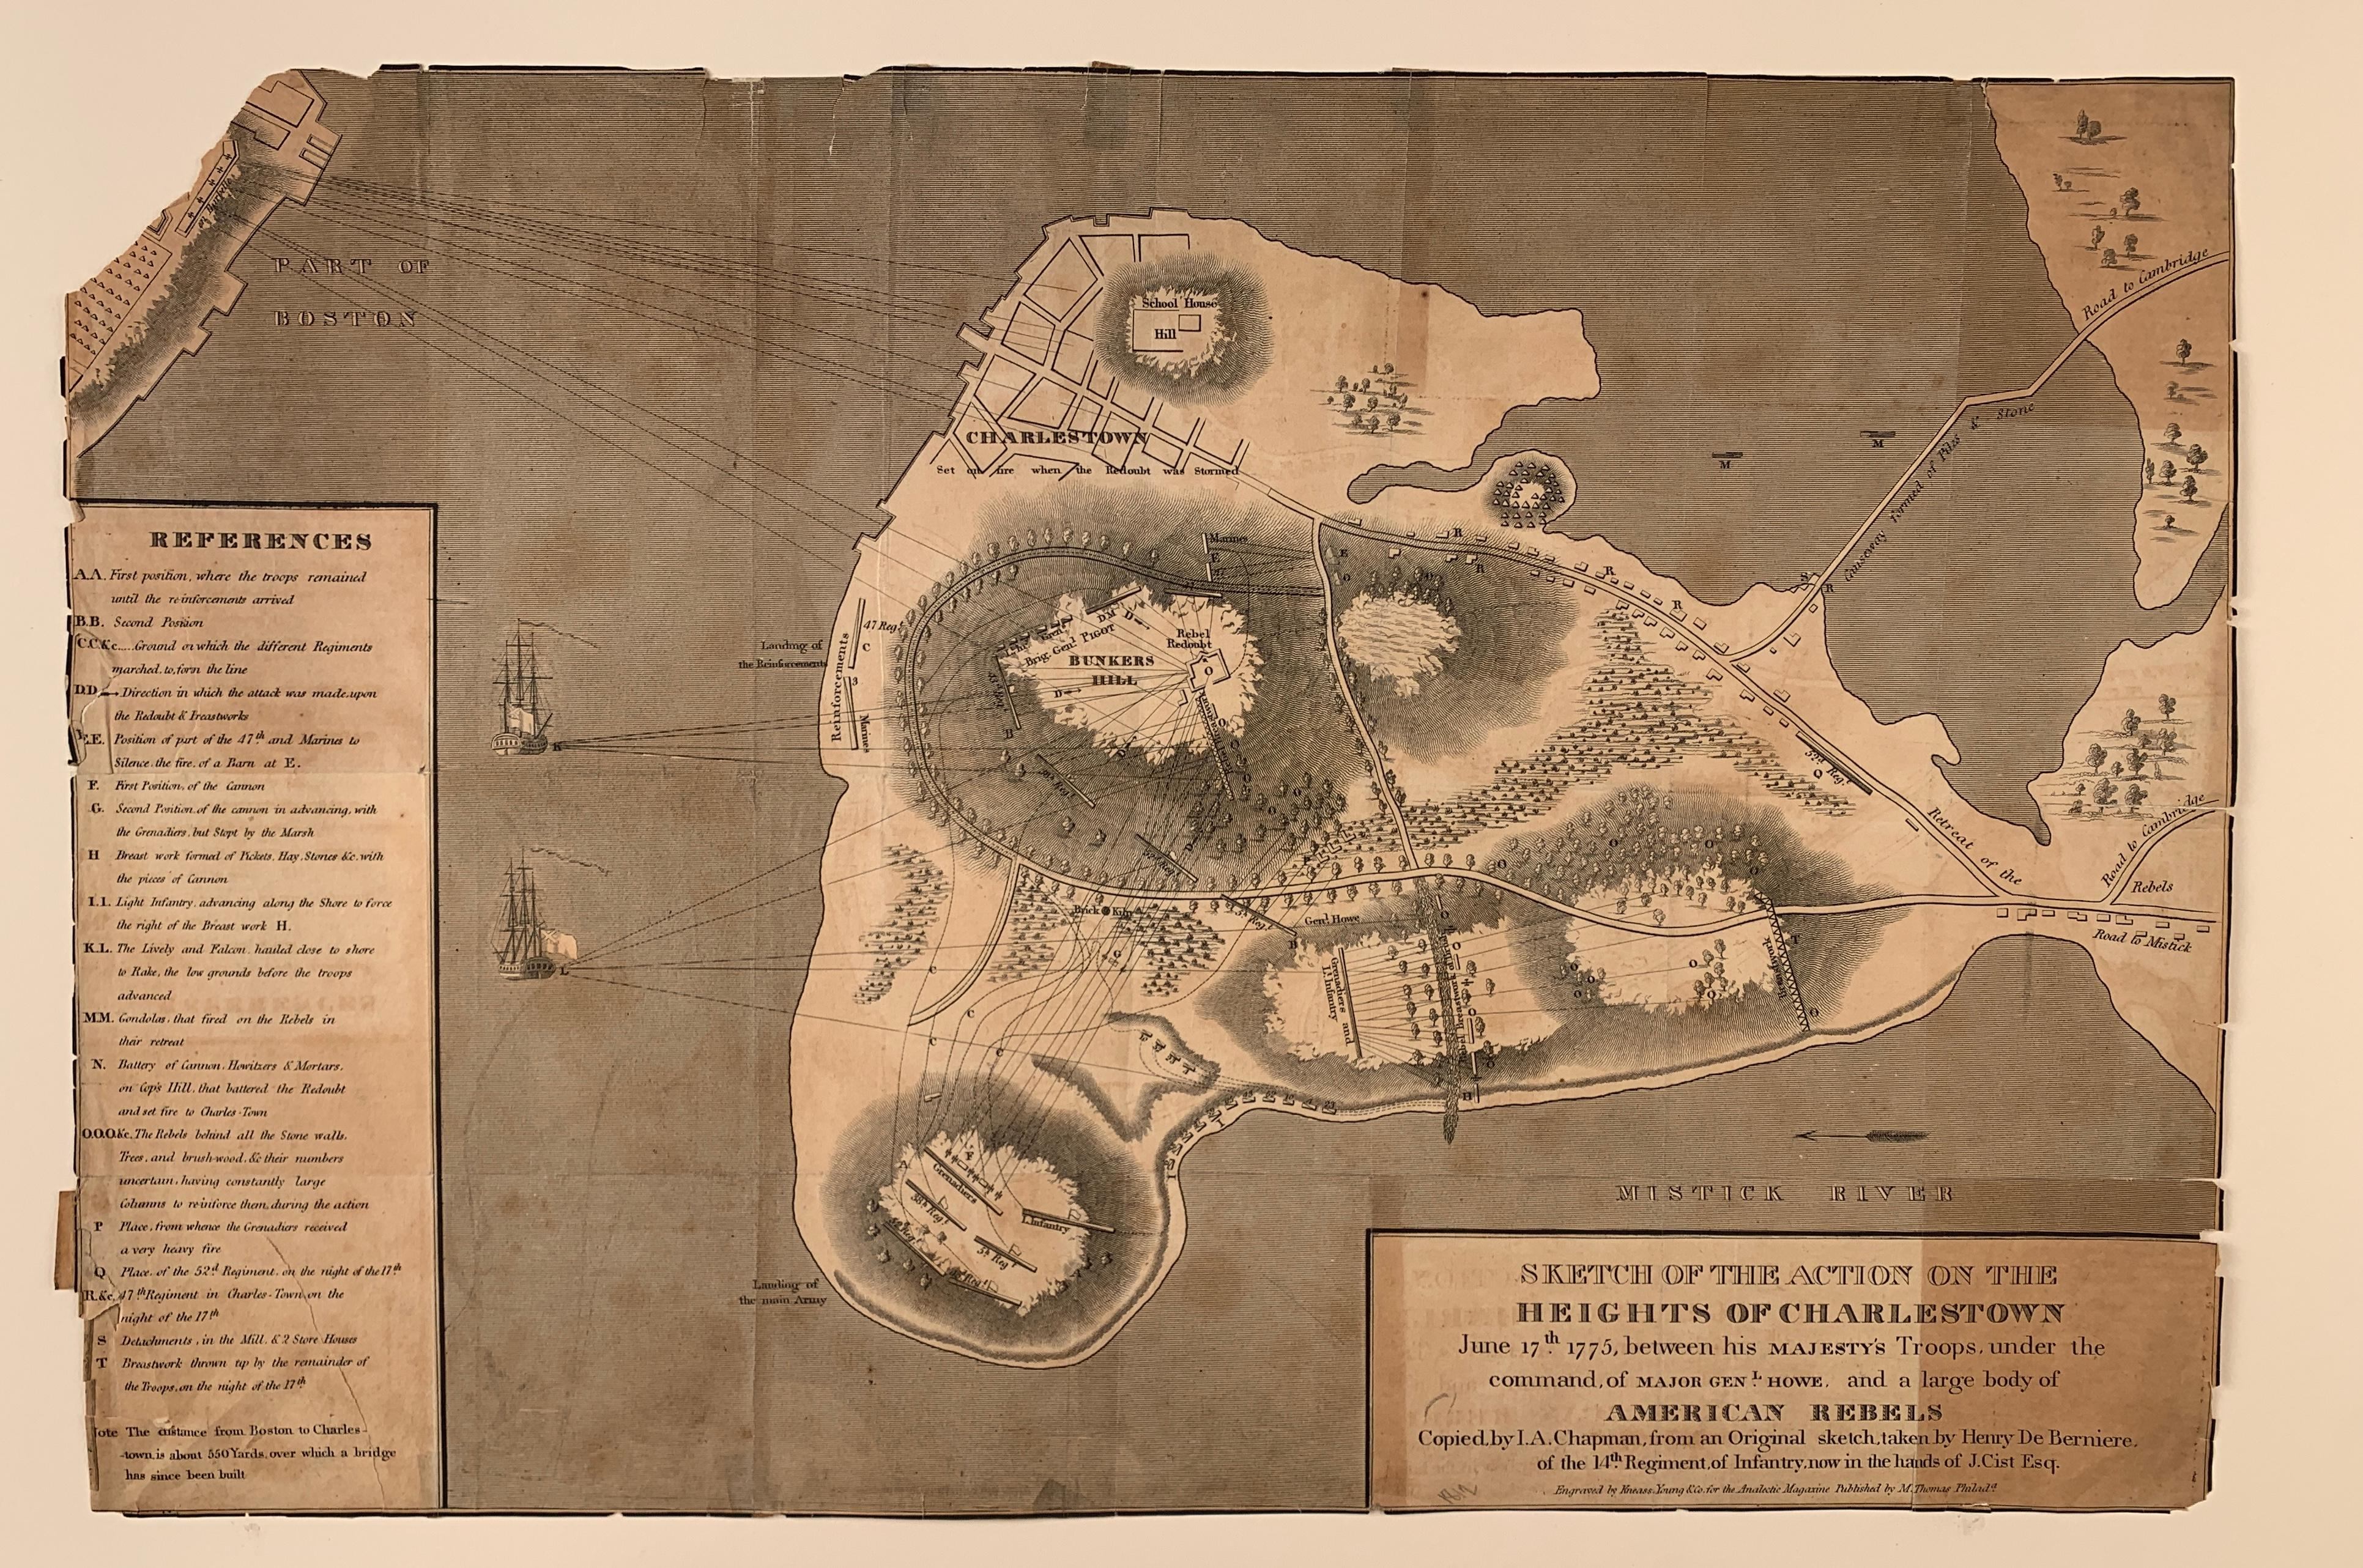 1818 Map of the Battle of Bunker Hill